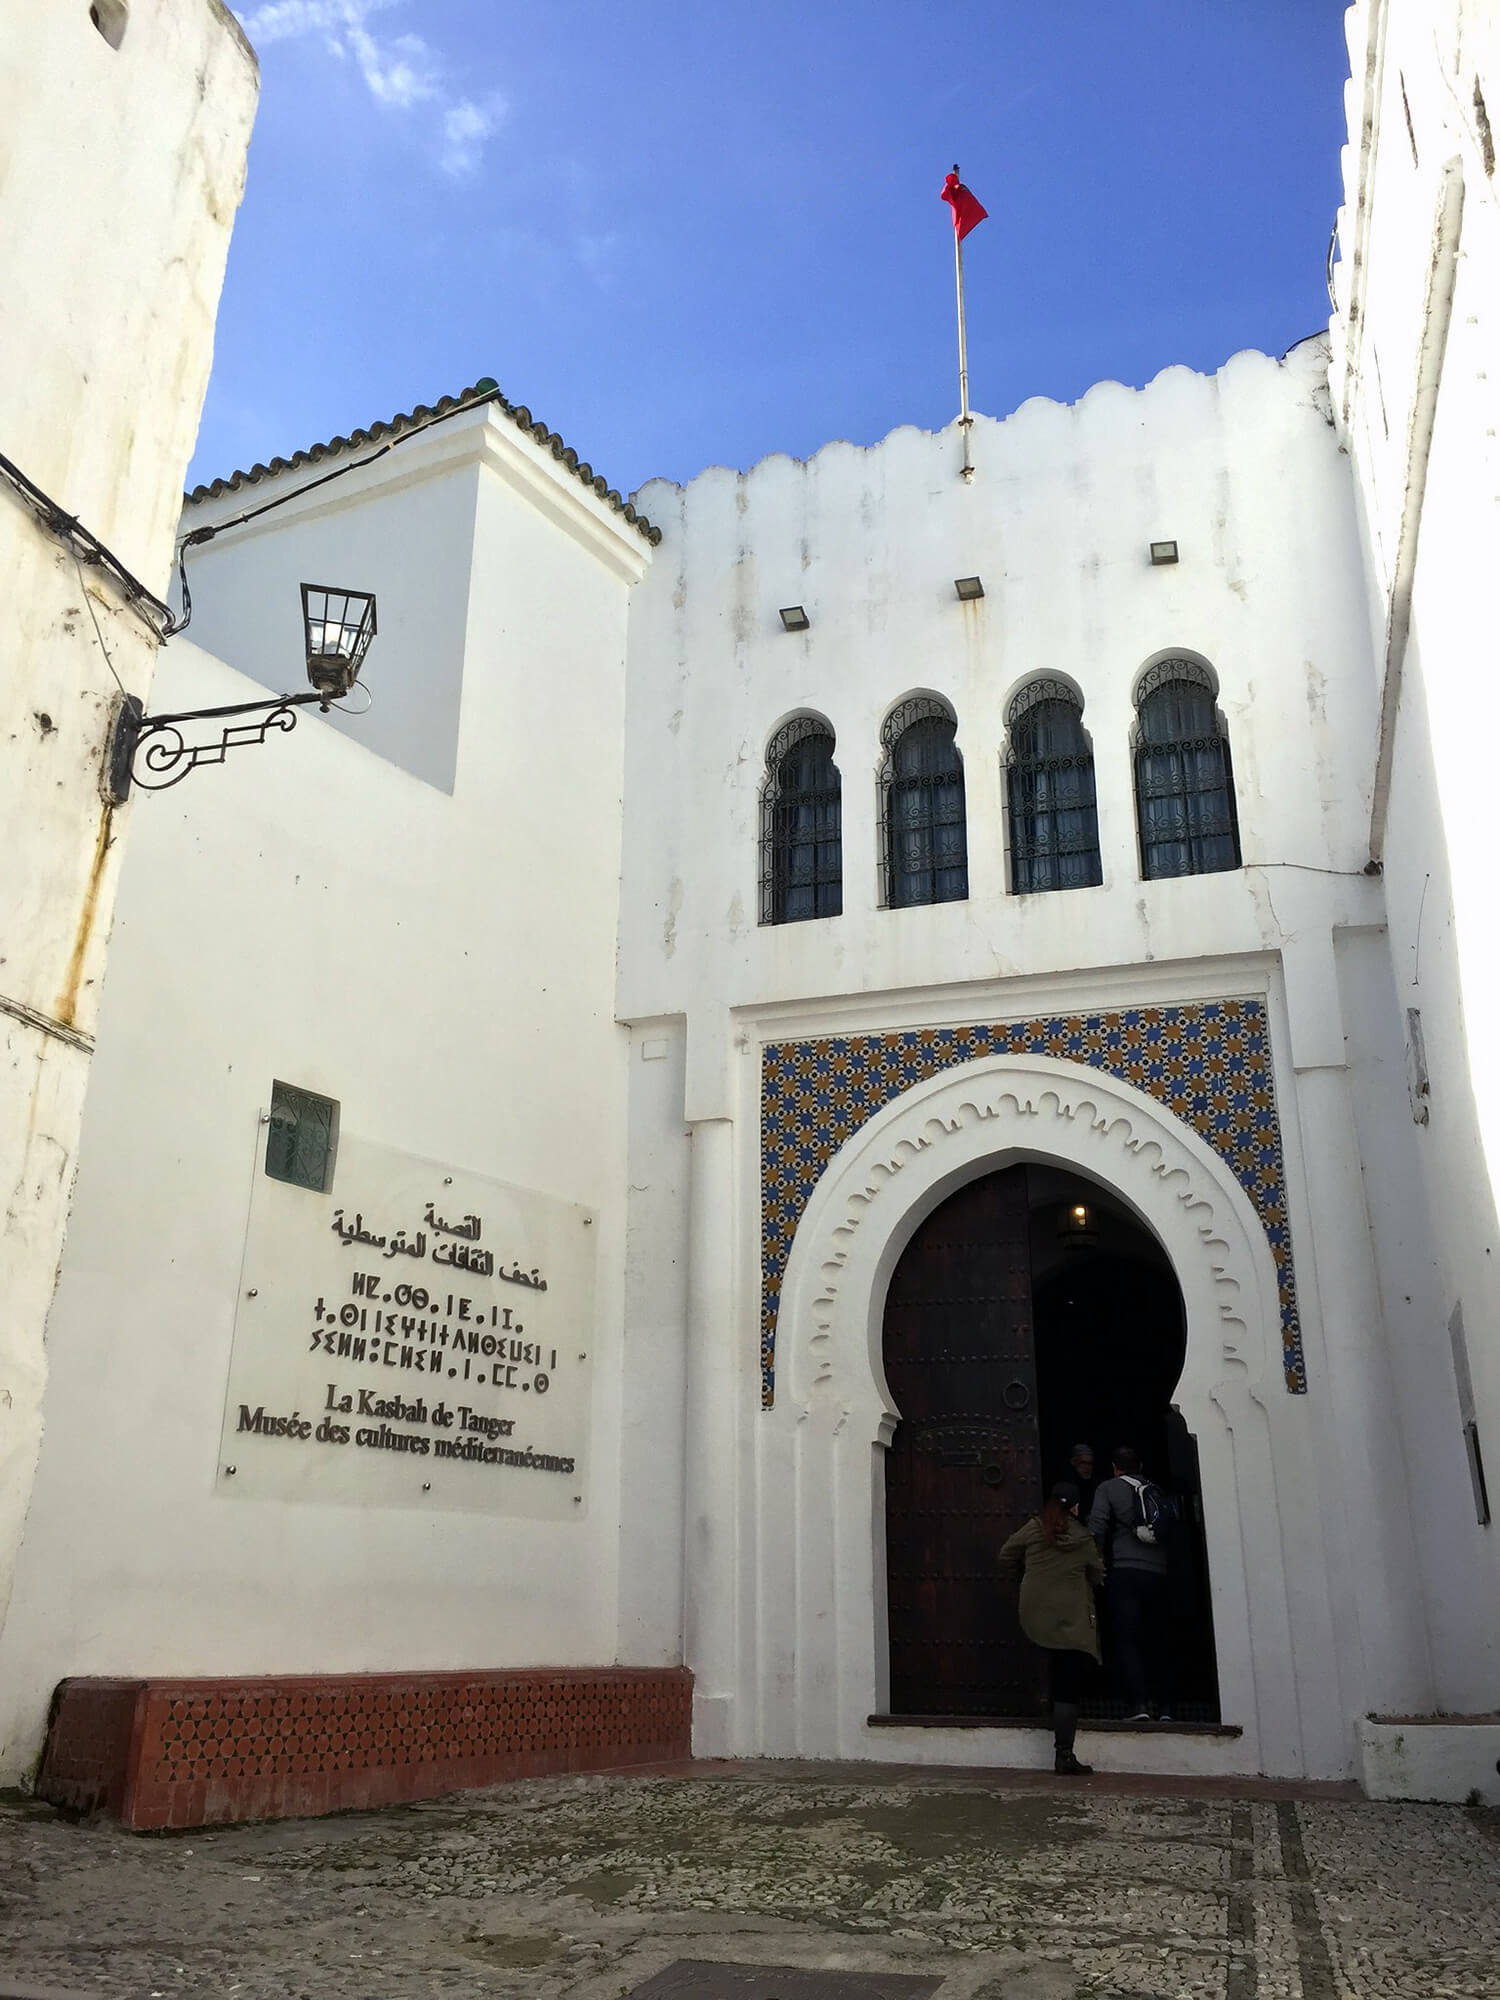 Sahara Desert Tour - What to Do and See in Tangier - The Exciting Port City of Morocco - Kasbah Museum